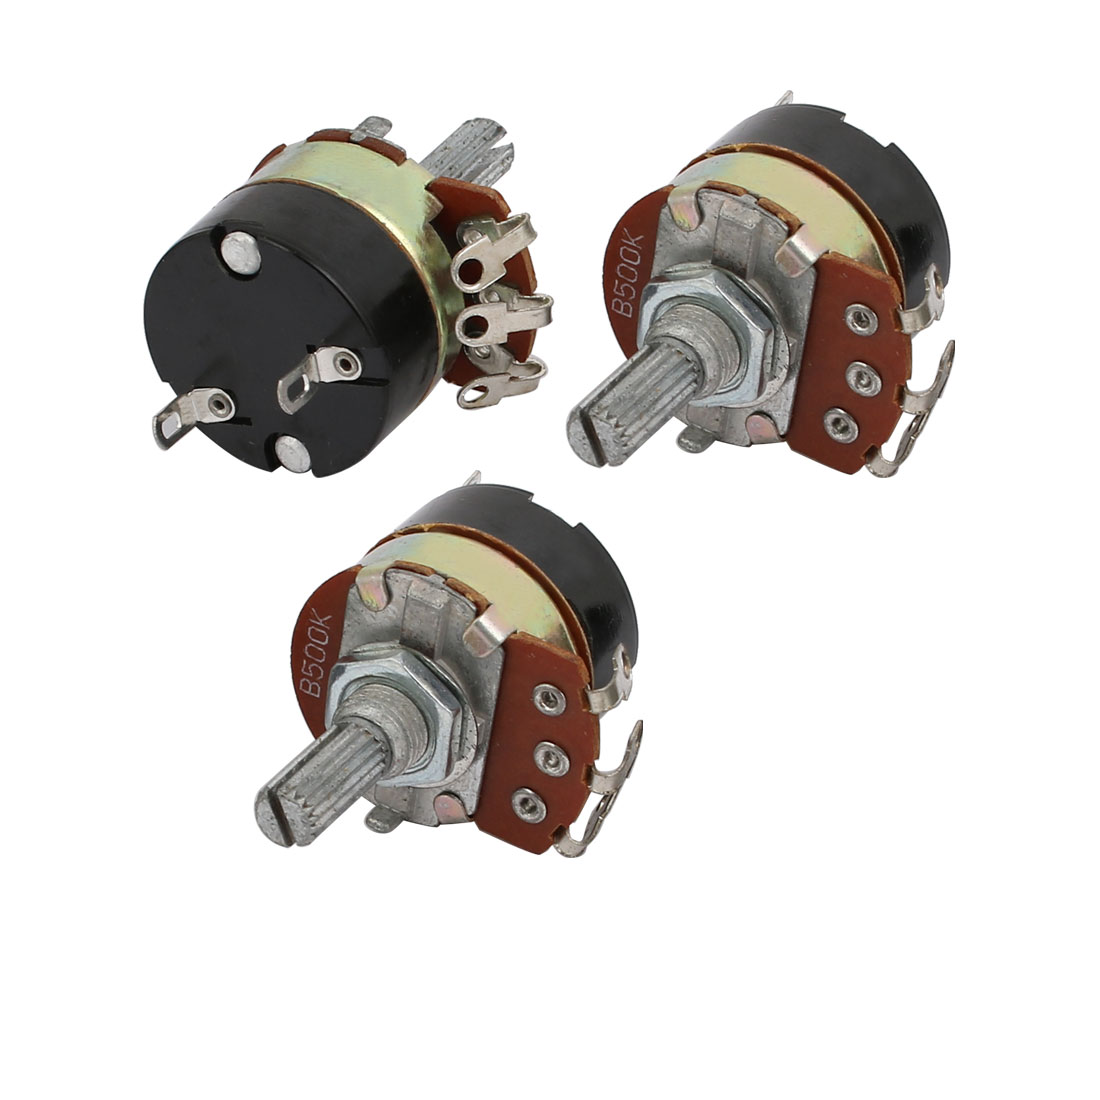 3Pcs 24mmx30mm Single Linear Rotary Switch Carbon Potentiometer 500K Ohm WH138